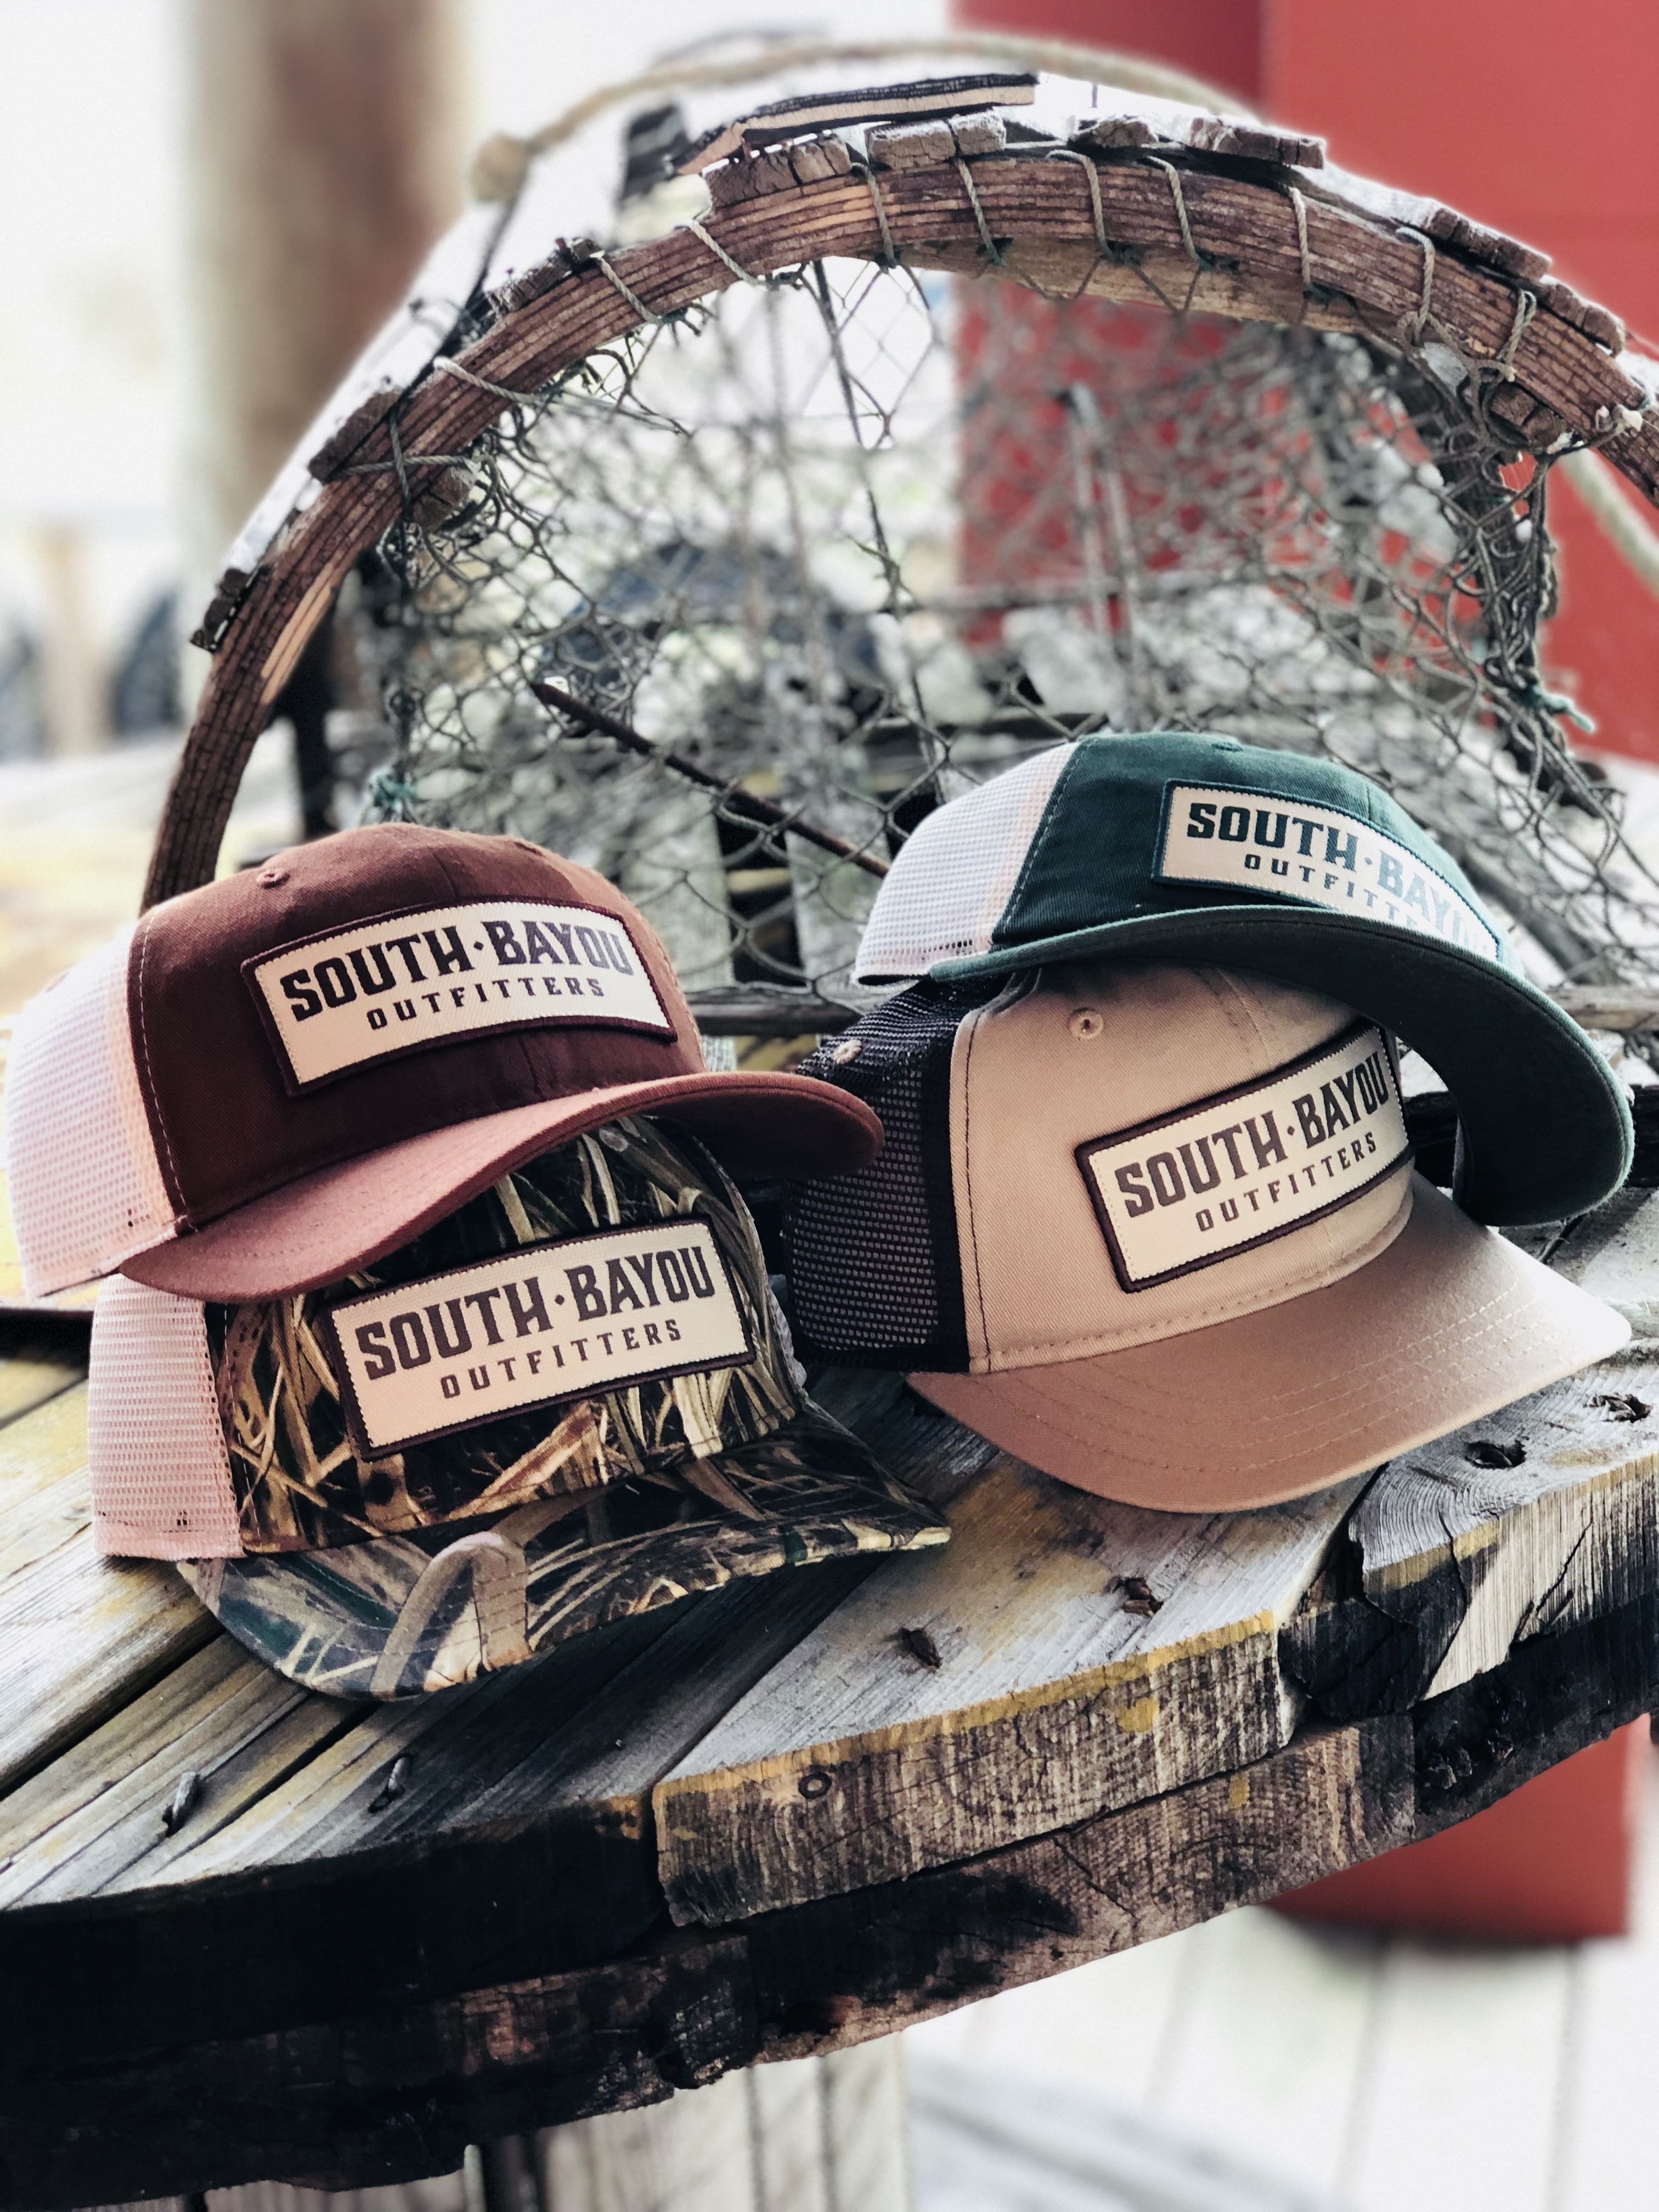 375a561fe3d Southbayou hats headwear outdoor apparel southern style Cajun oldsouth  snapback camo patch